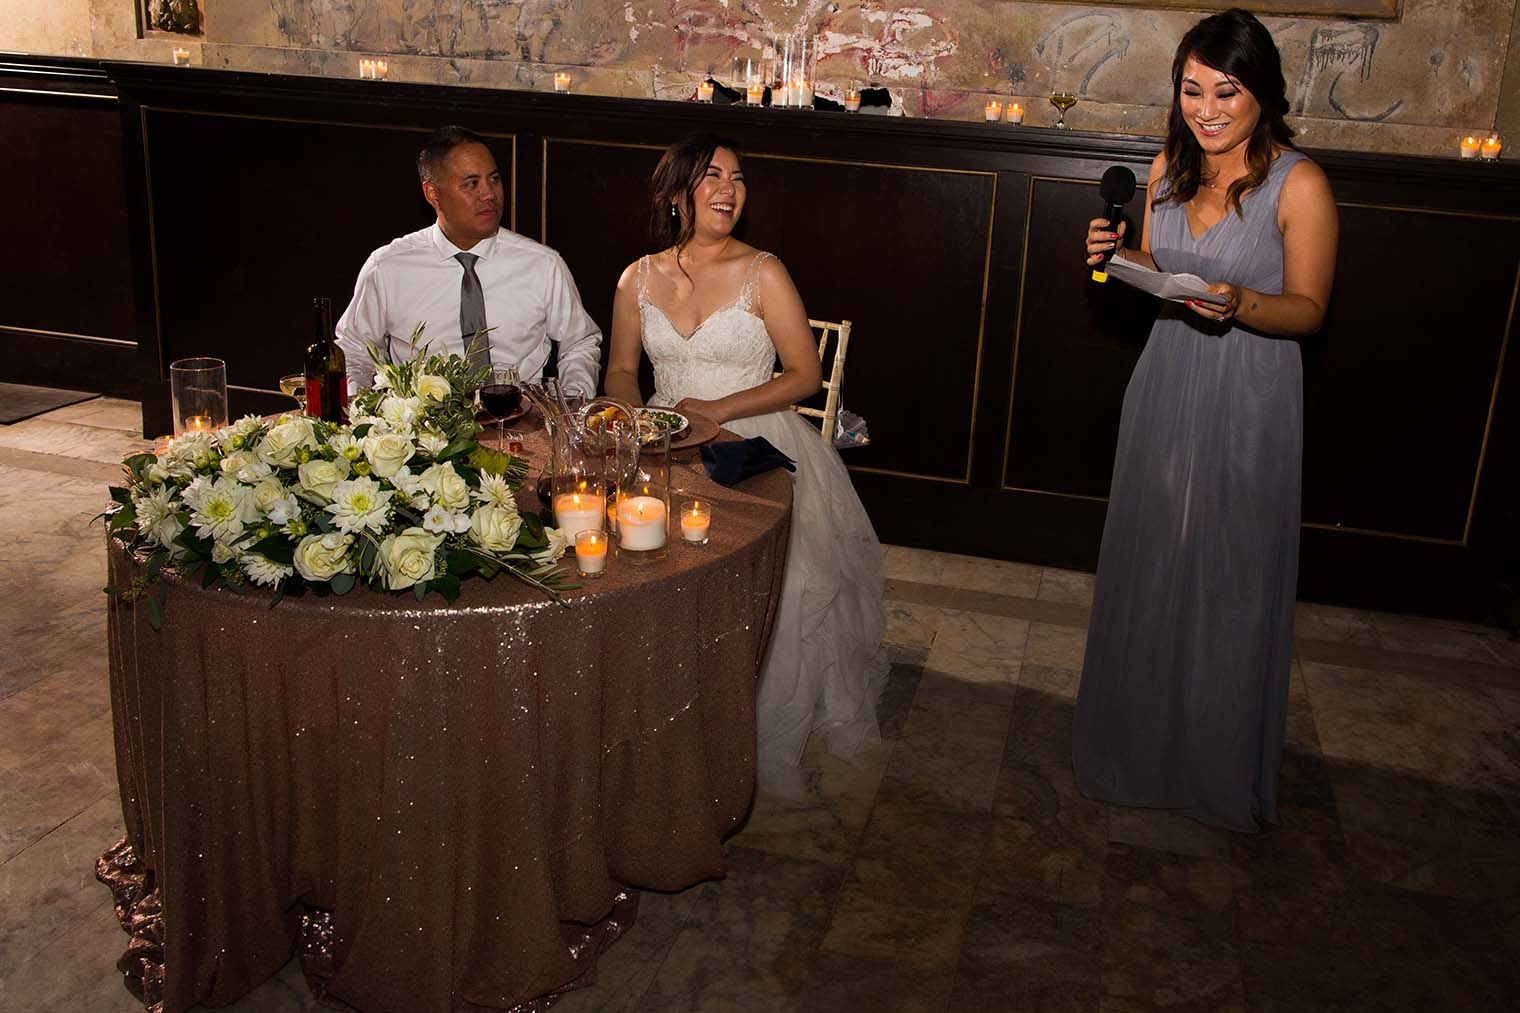 16th Street Station Wedding Toasts